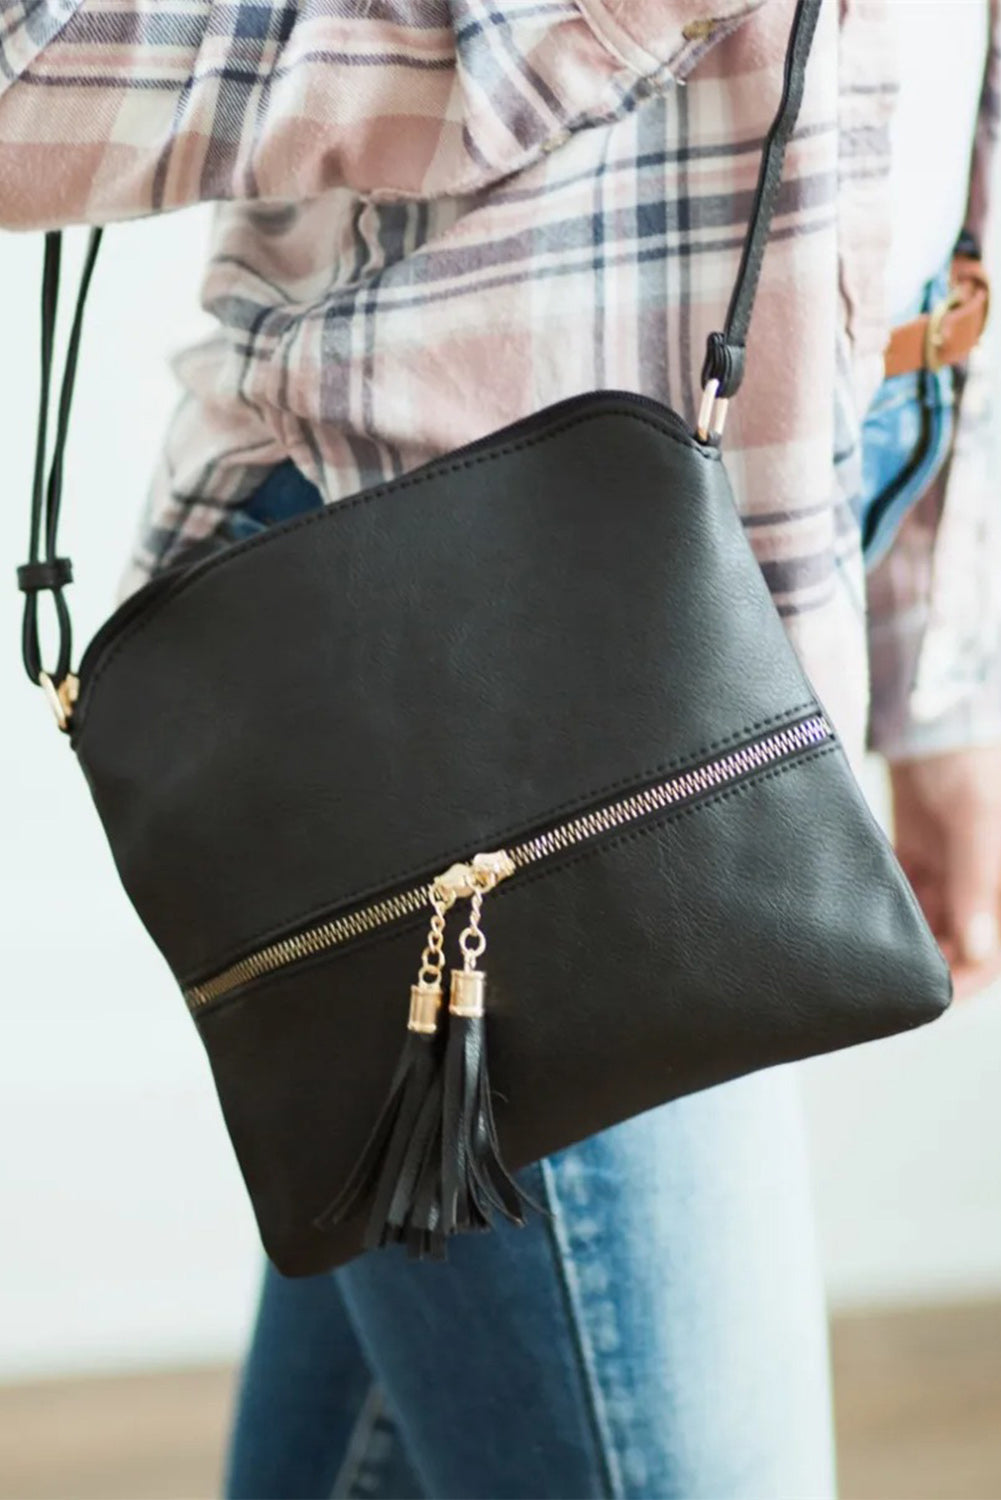 Black Crossbody Bag with Tassel Bags Discount Designer Fashion Clothes Shoes Bags Women Men Kids Children Black Owned Business